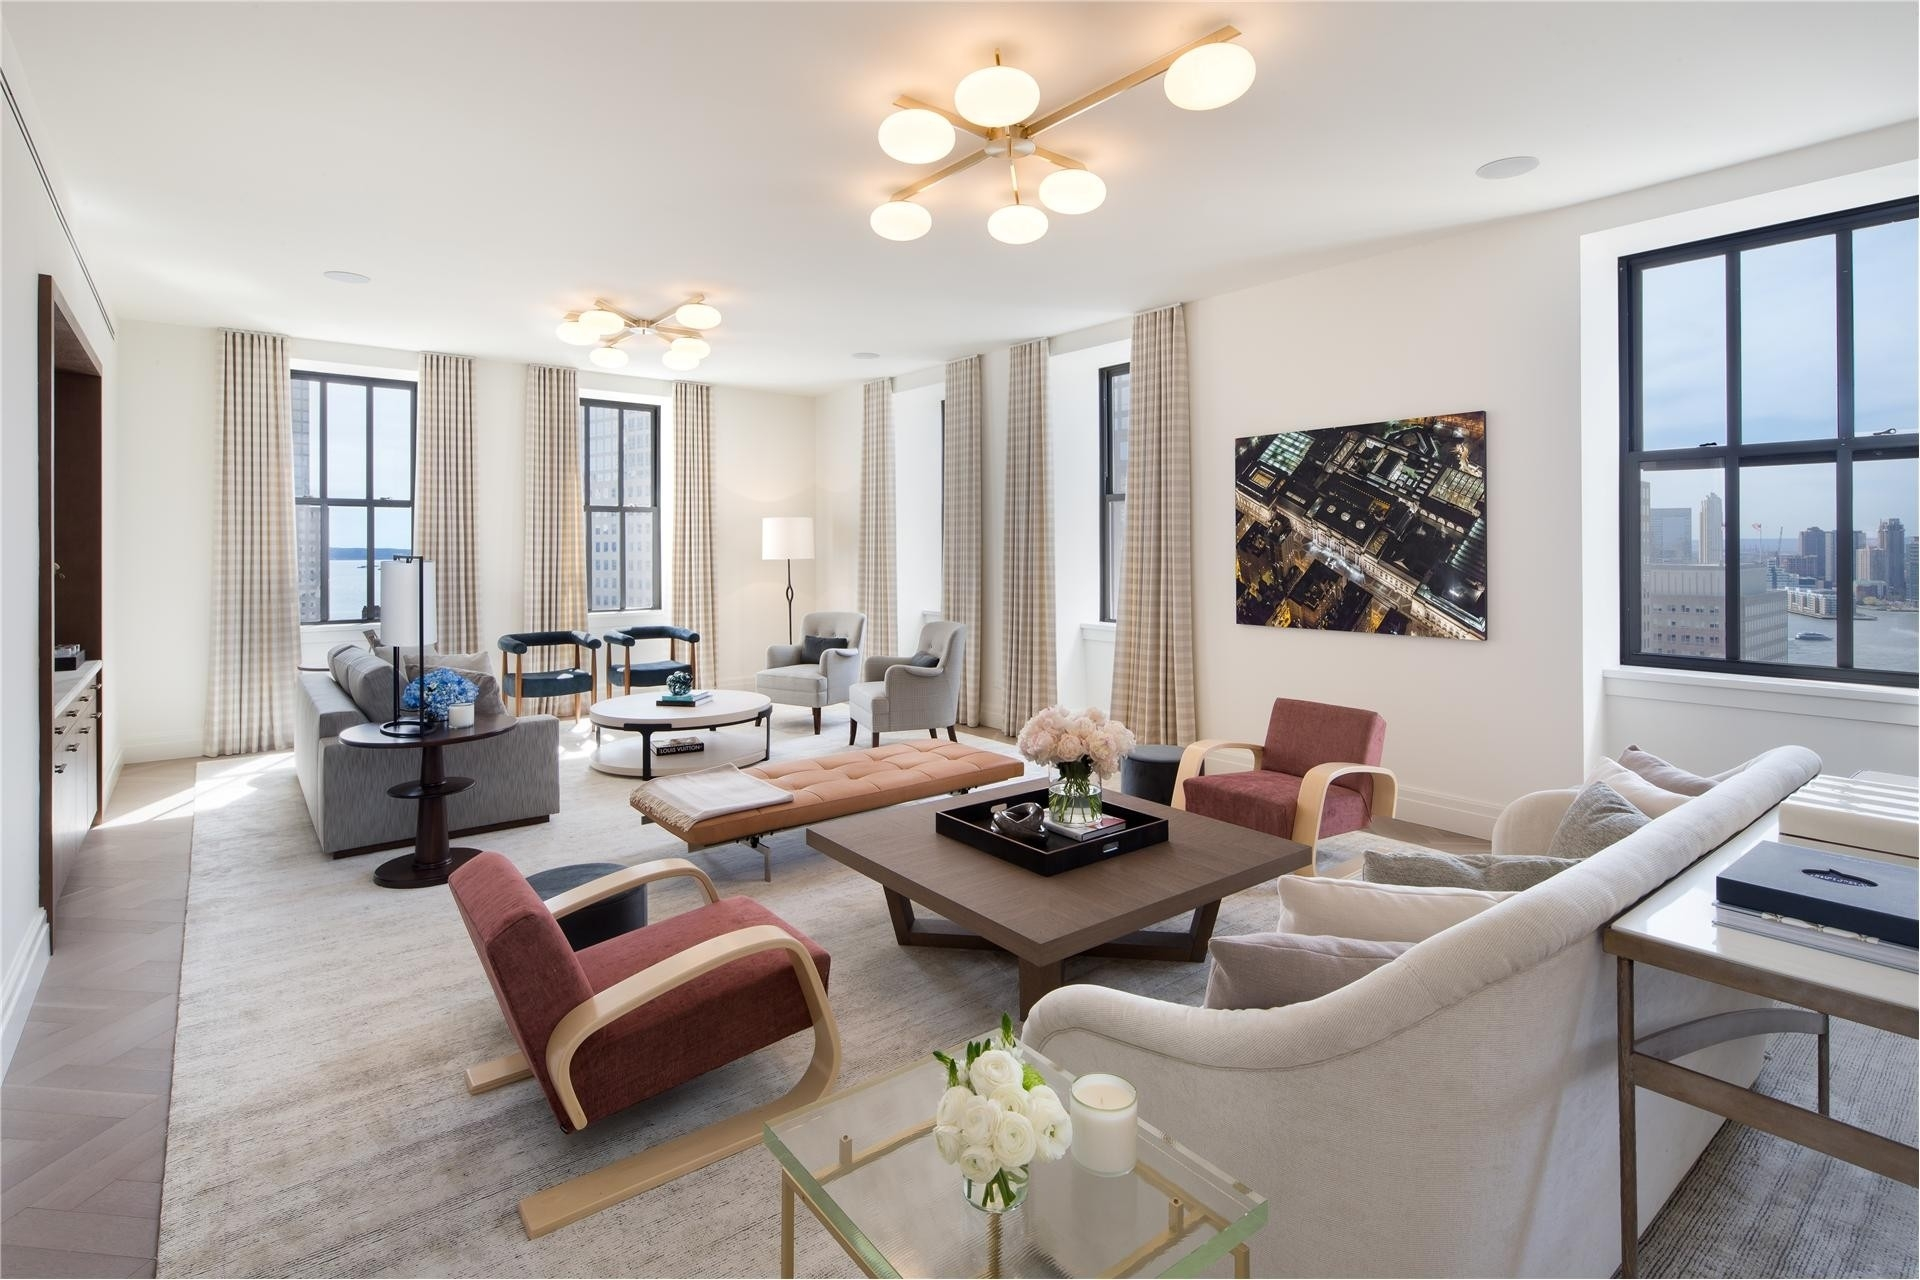 Condominium at One Hundred Barclay Tribeca, 100 Barclay St, 15R TriBeCa, New York